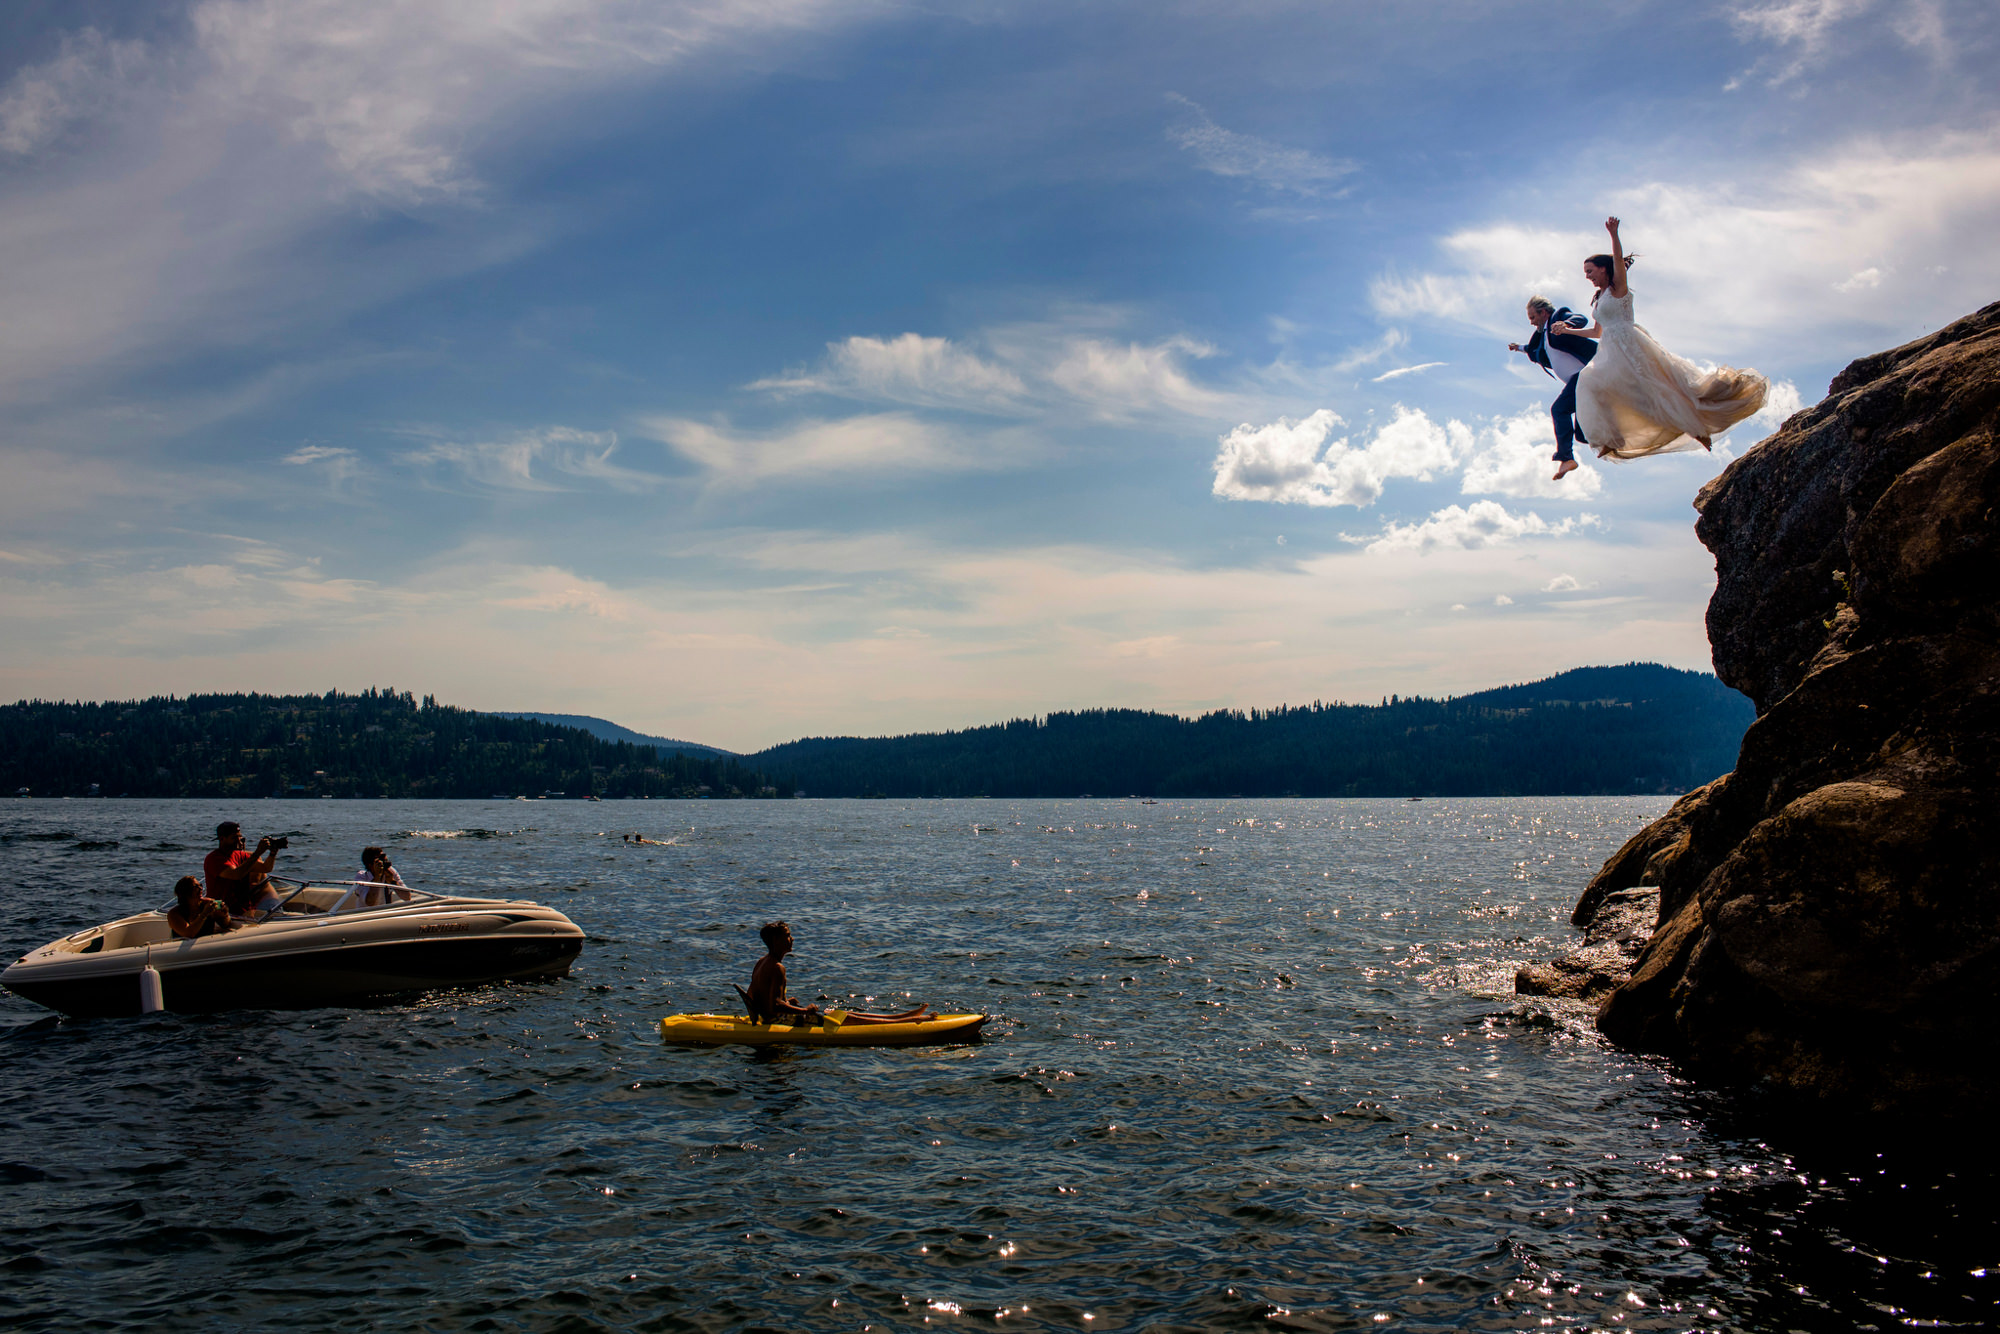 Bride and groom jump into ocean from cliff, photo by The Chrismans